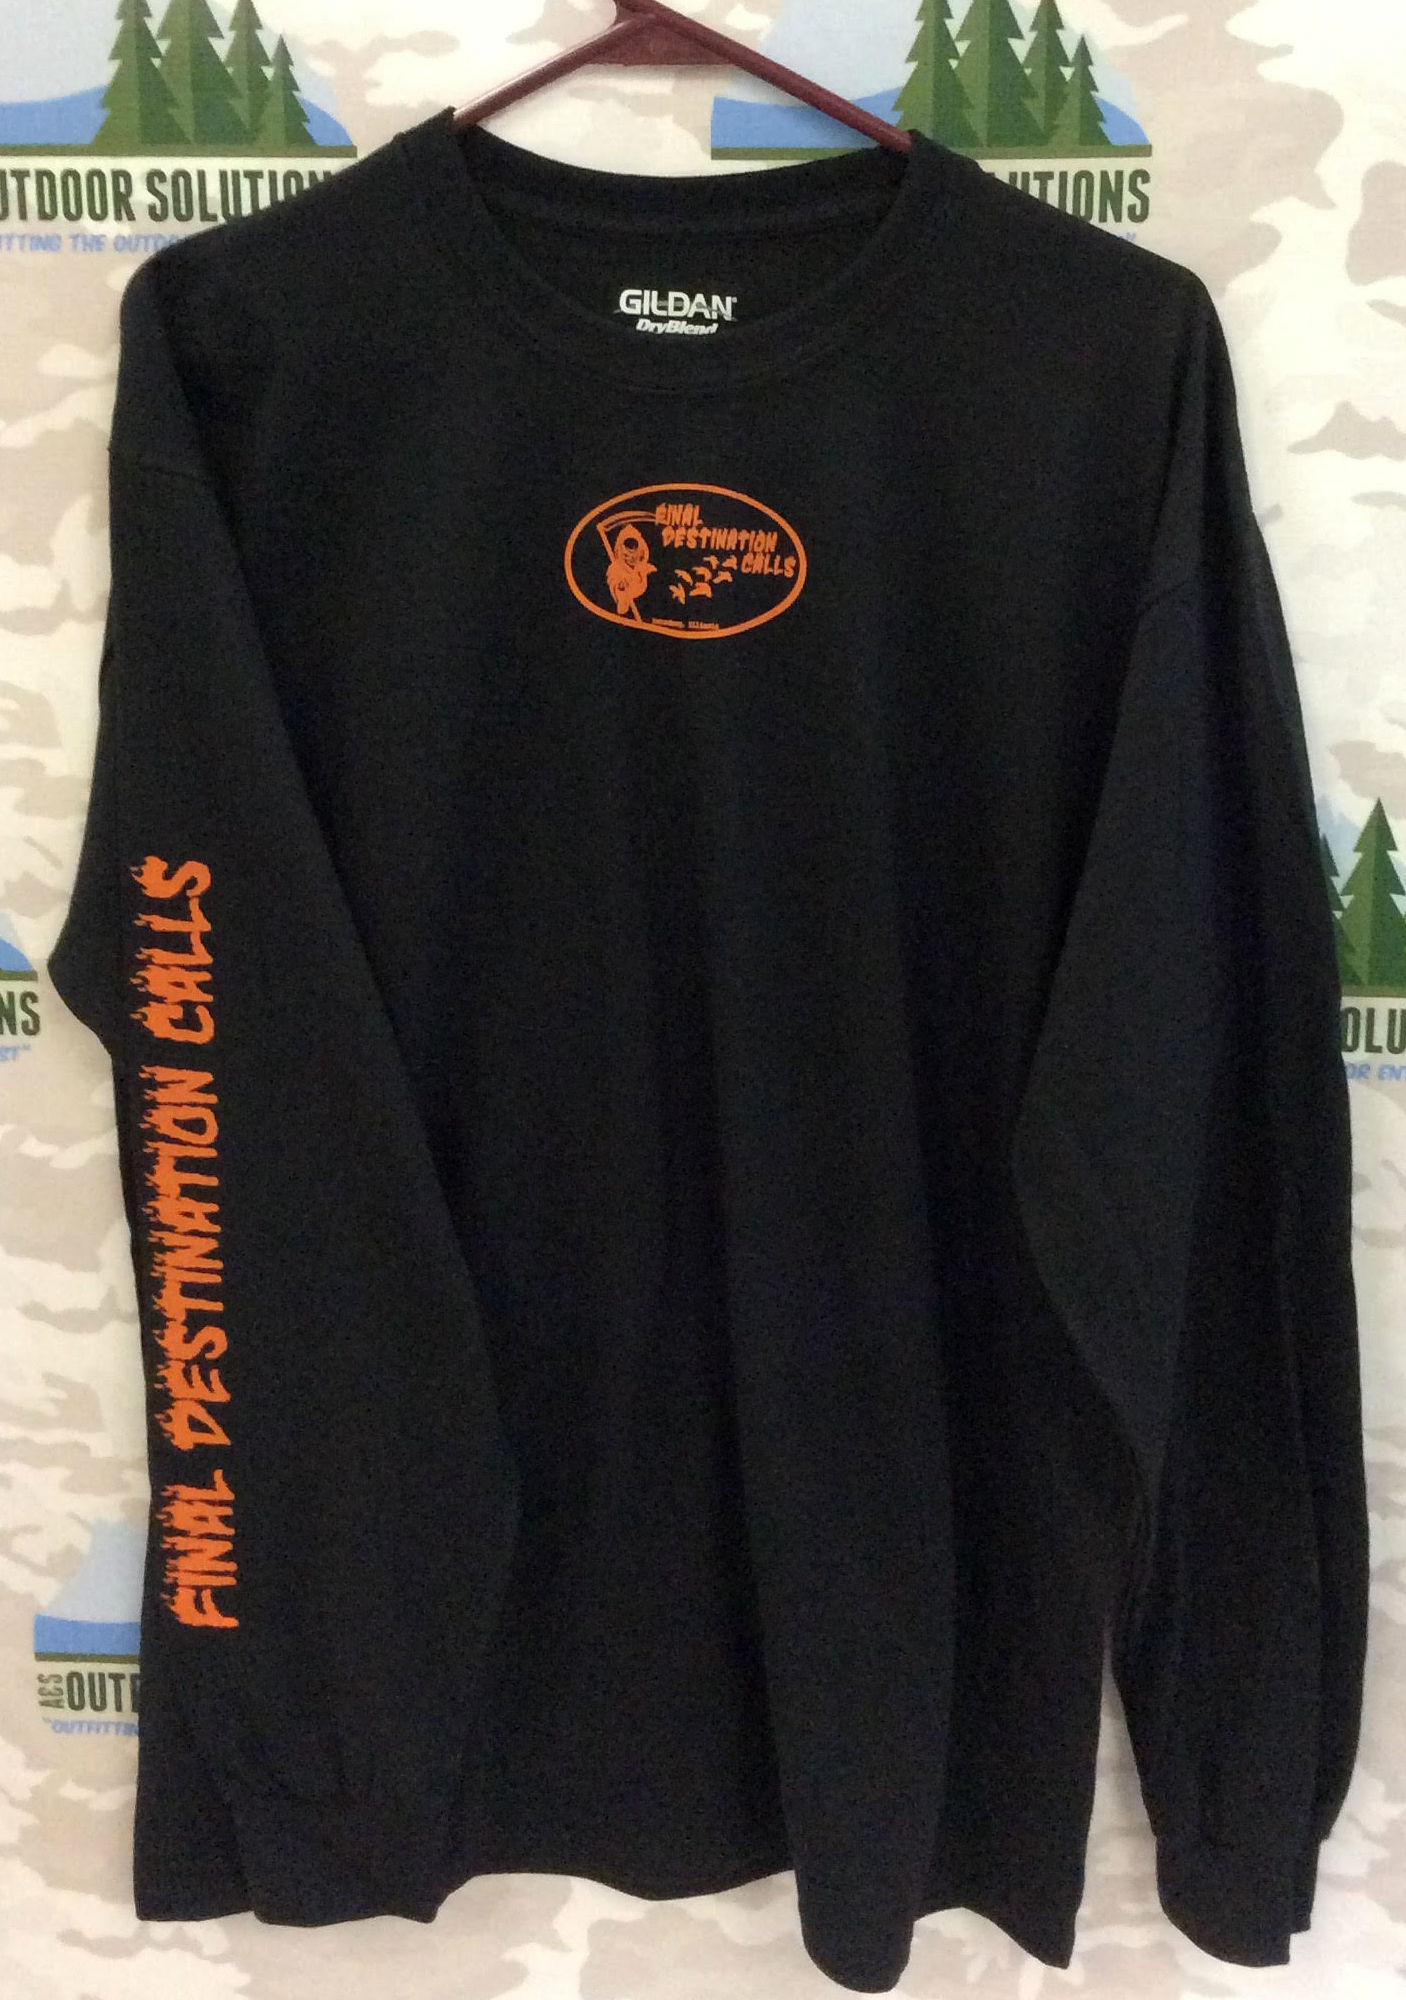 Black Long Sleeve Tee with Orange Logo from Final Destination Calls